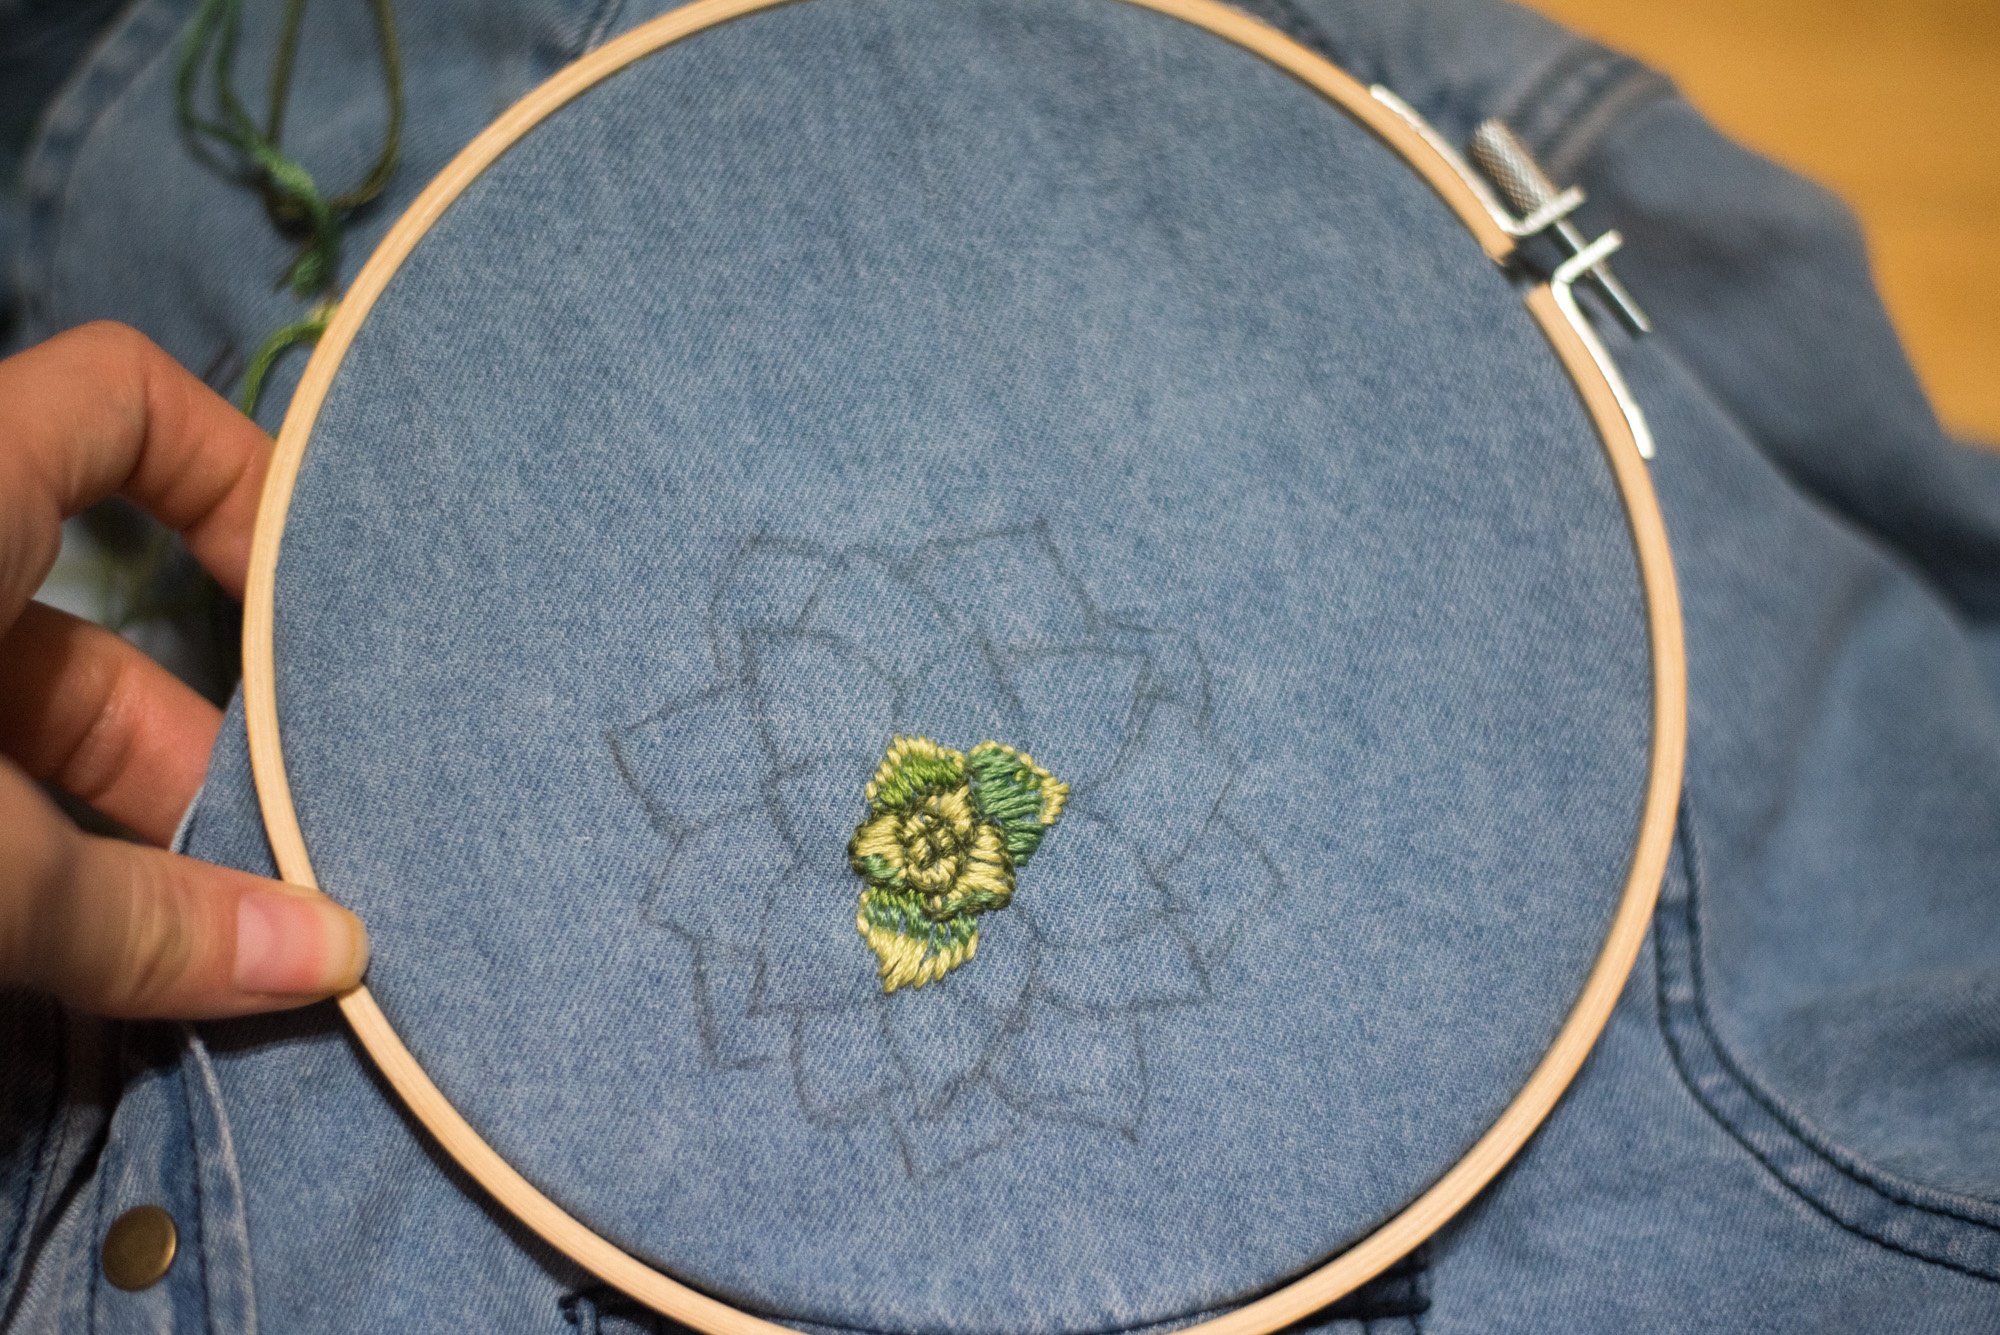 diy succulent embroidery